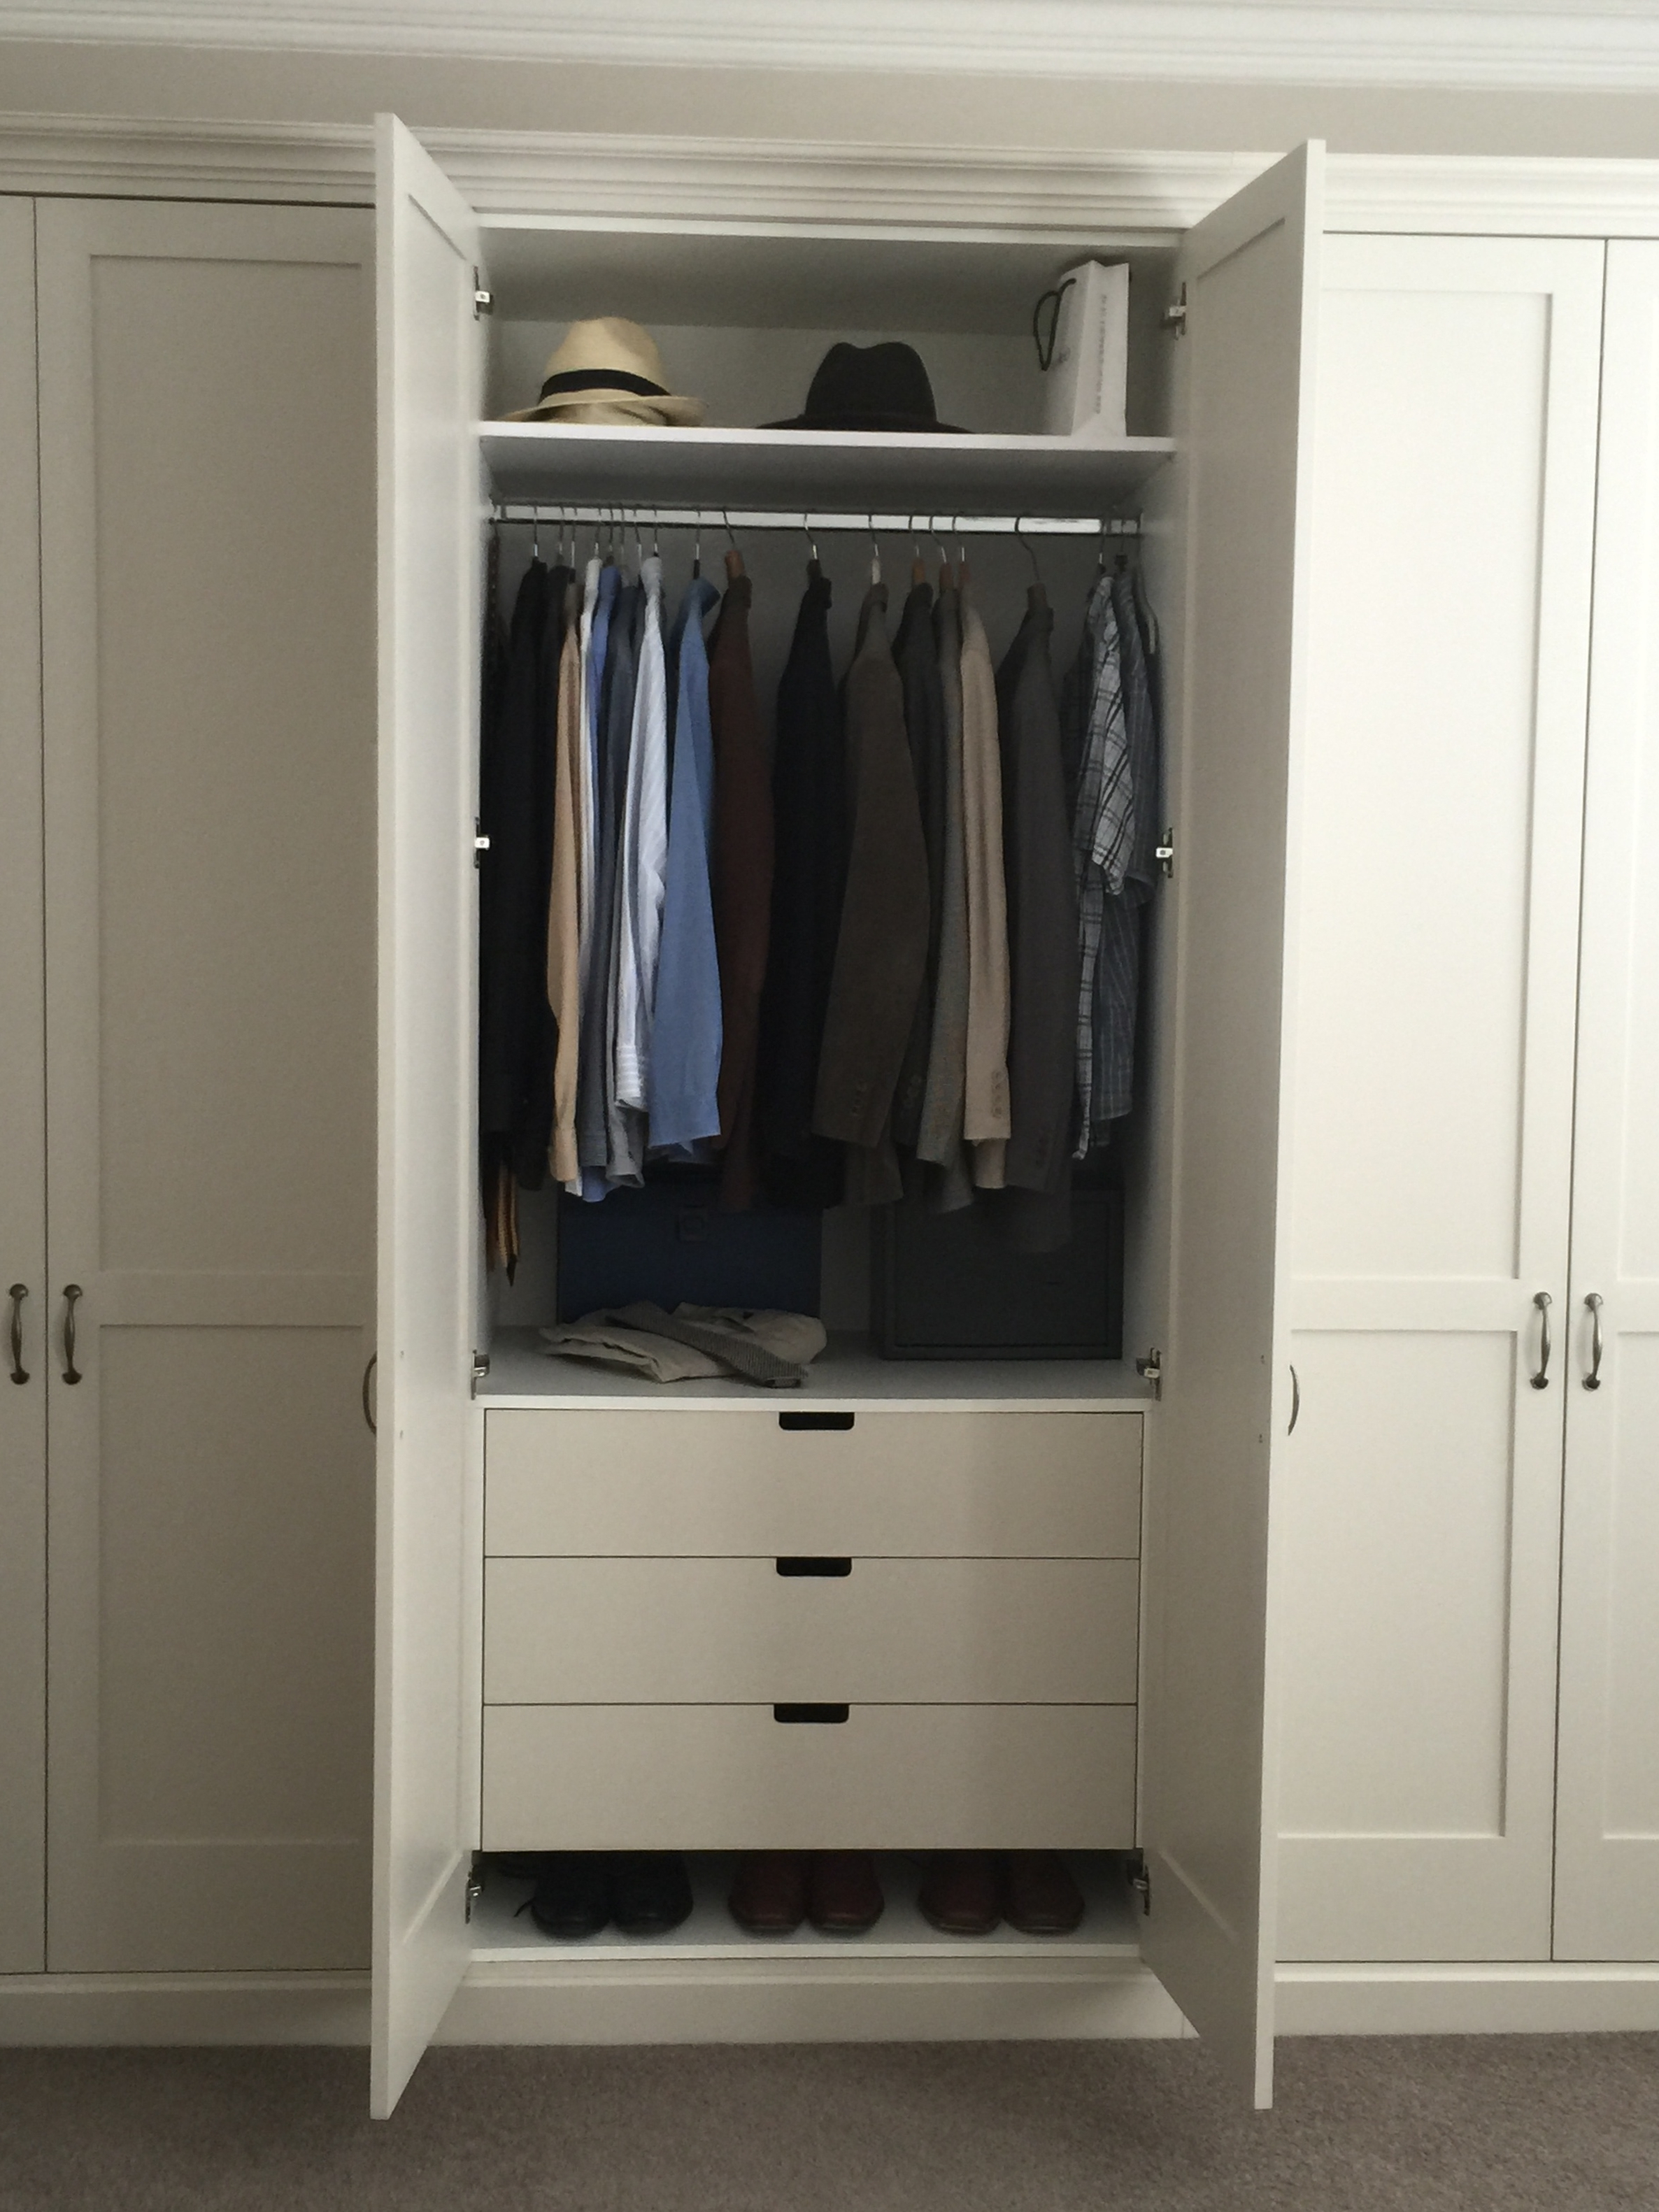 Most Up To Date Wardrobes With Drawers And Shelves Intended For Traditional Shaker Wardrobes, With Drawers Inside, Shelves And (View 7 of 15)